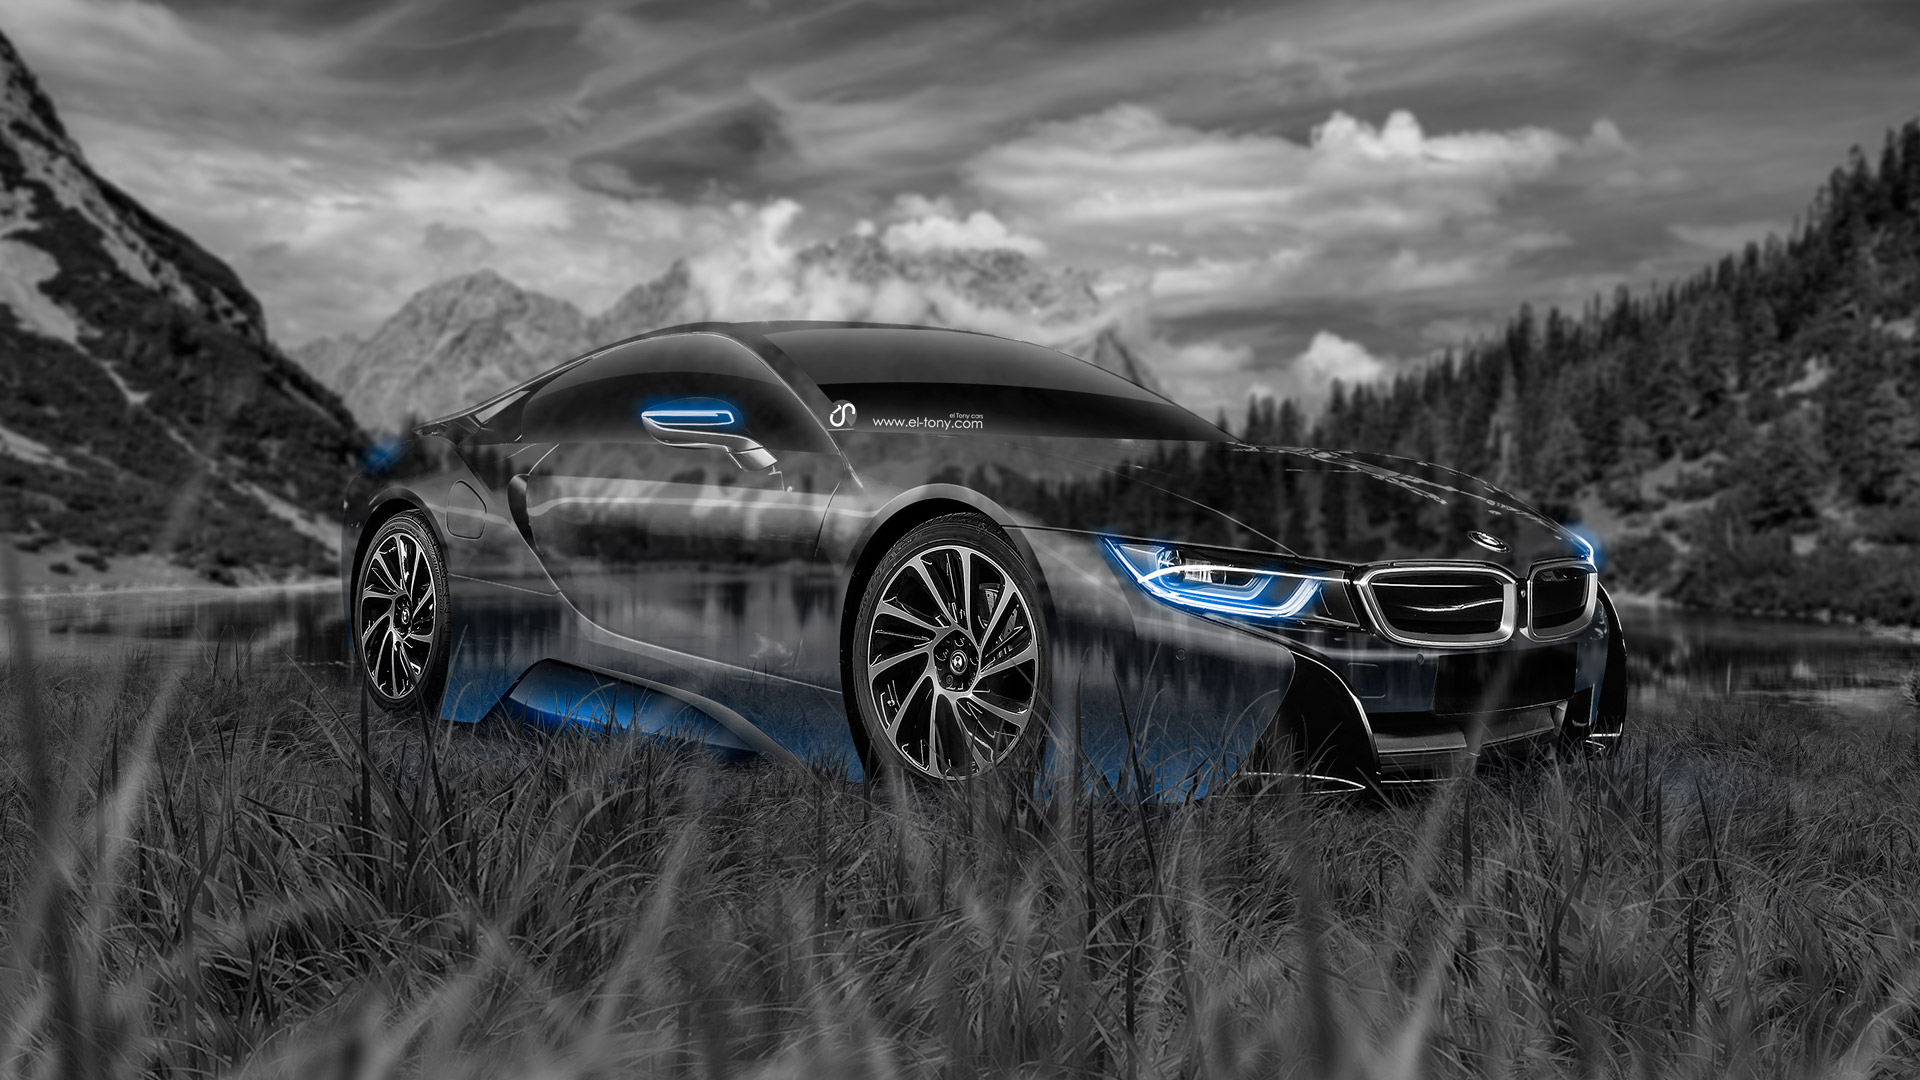 Bmw I8 Crystal Nature Car 2014 El Tony